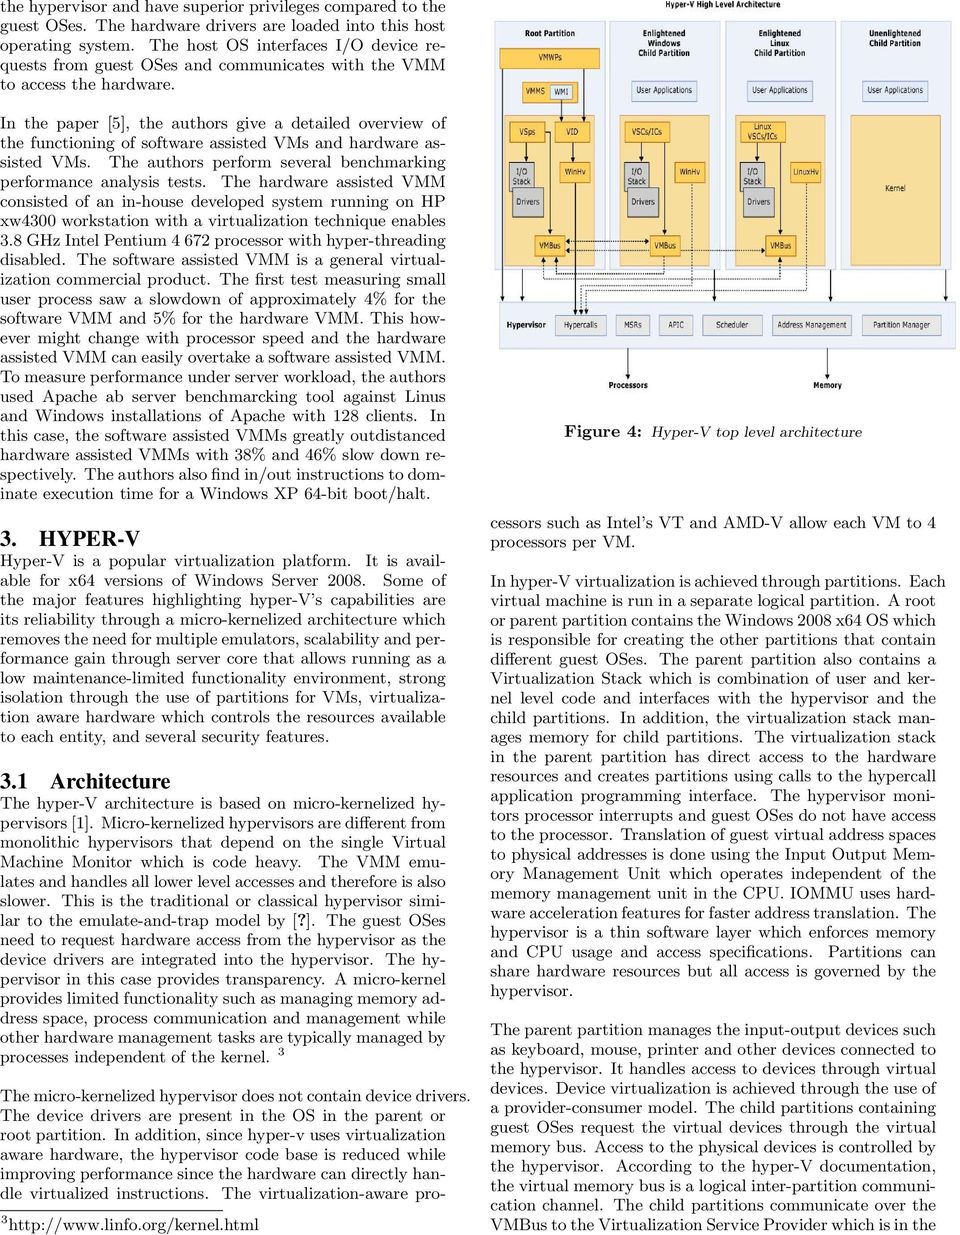 In the paper [5], the authors give a detailed overview of the functioning of software assisted VMs and hardware assisted VMs. The authors perform several benchmarking performance analysis tests.